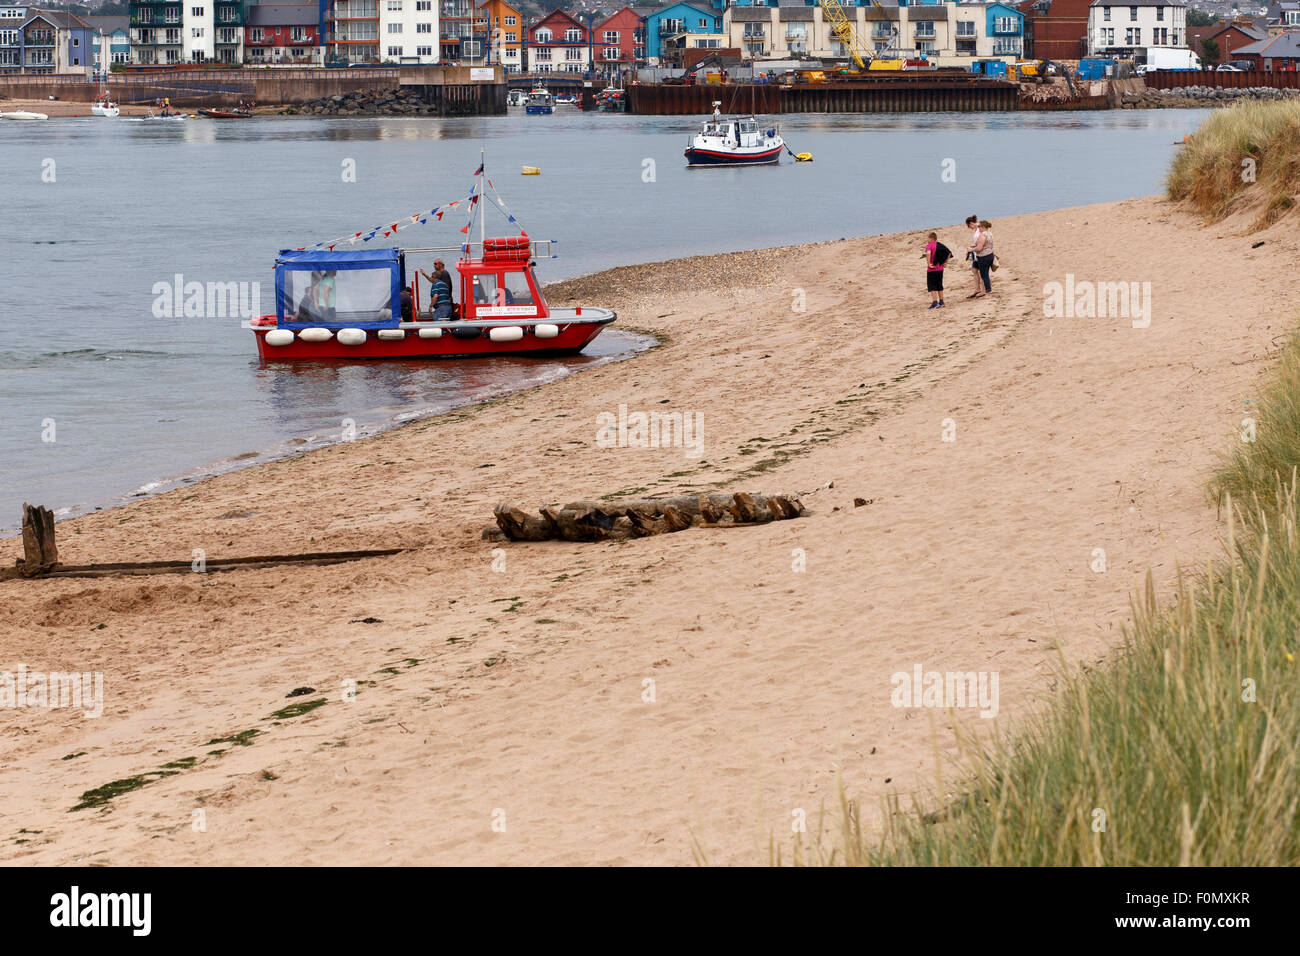 Passengers alighting from 'water taxi' at Dawlish Warren. Boat picking up passengers for return trip to Exmouth Stock Photo